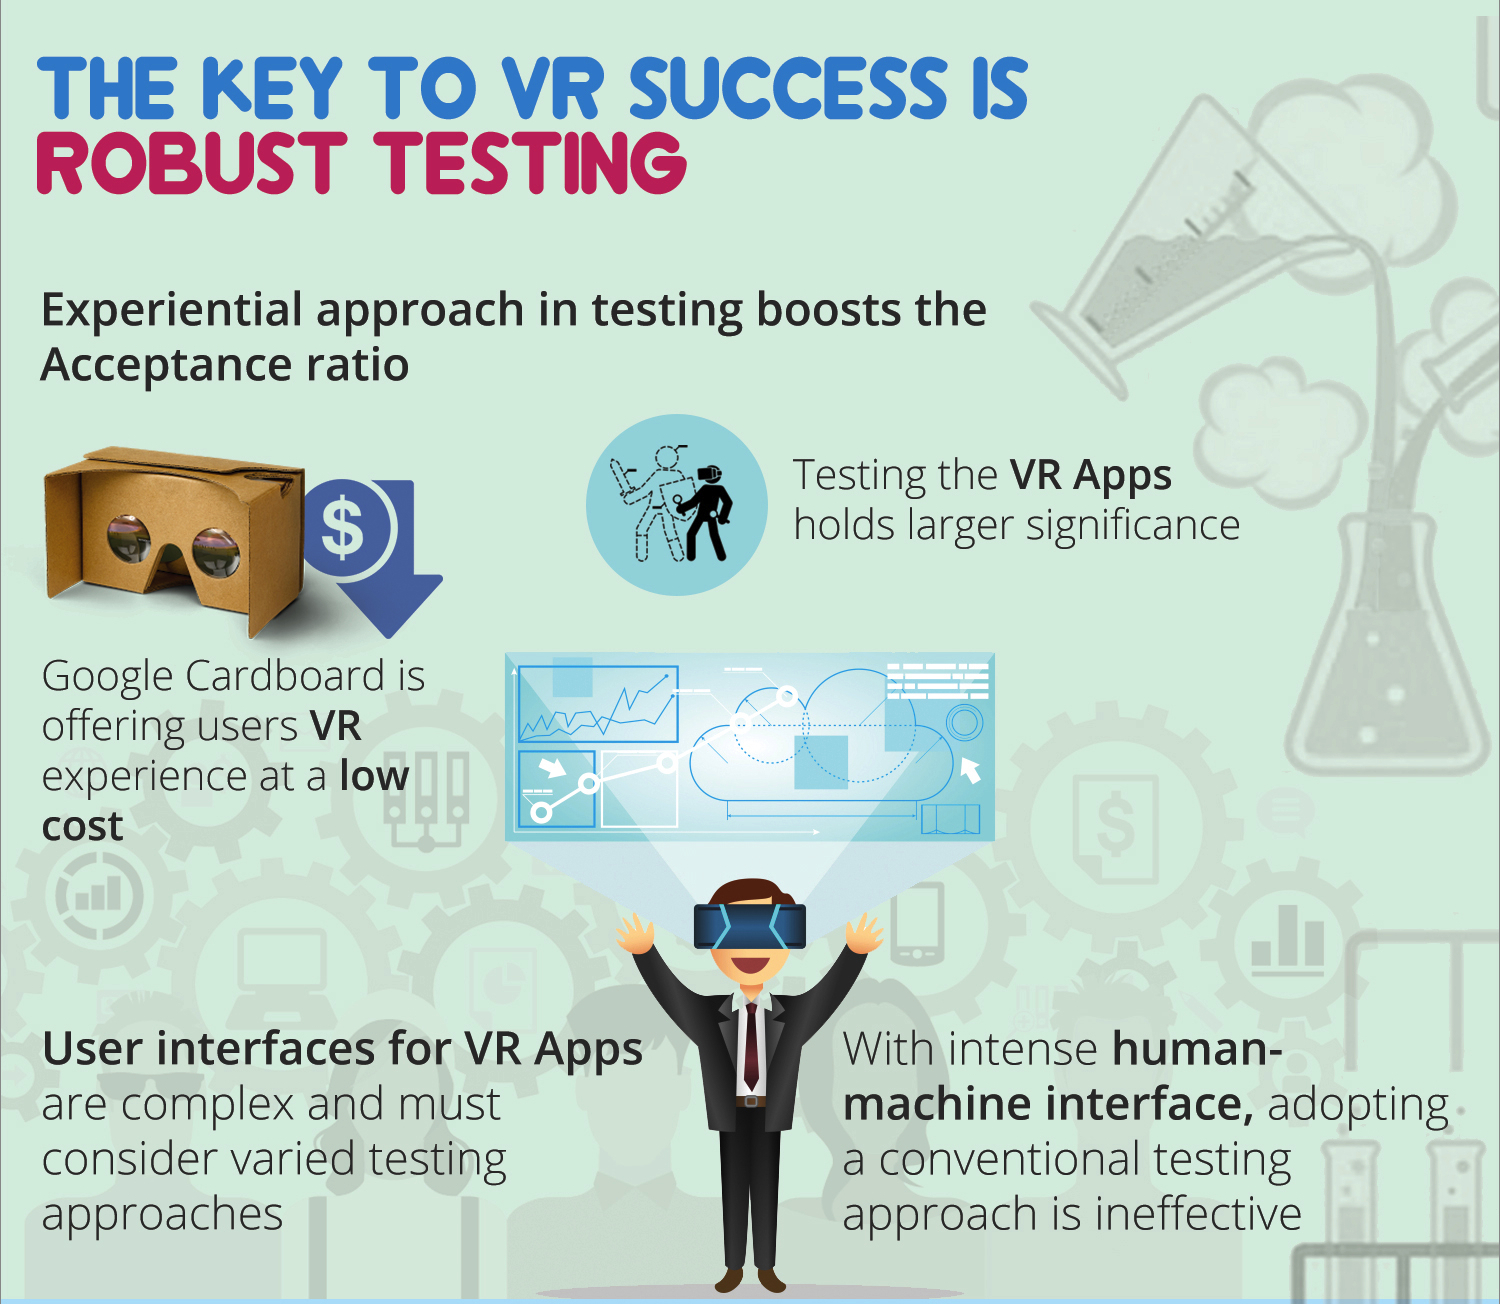 INFOGRAPHIC - VR BEHIND-THE-SCENES (top half b).jpg